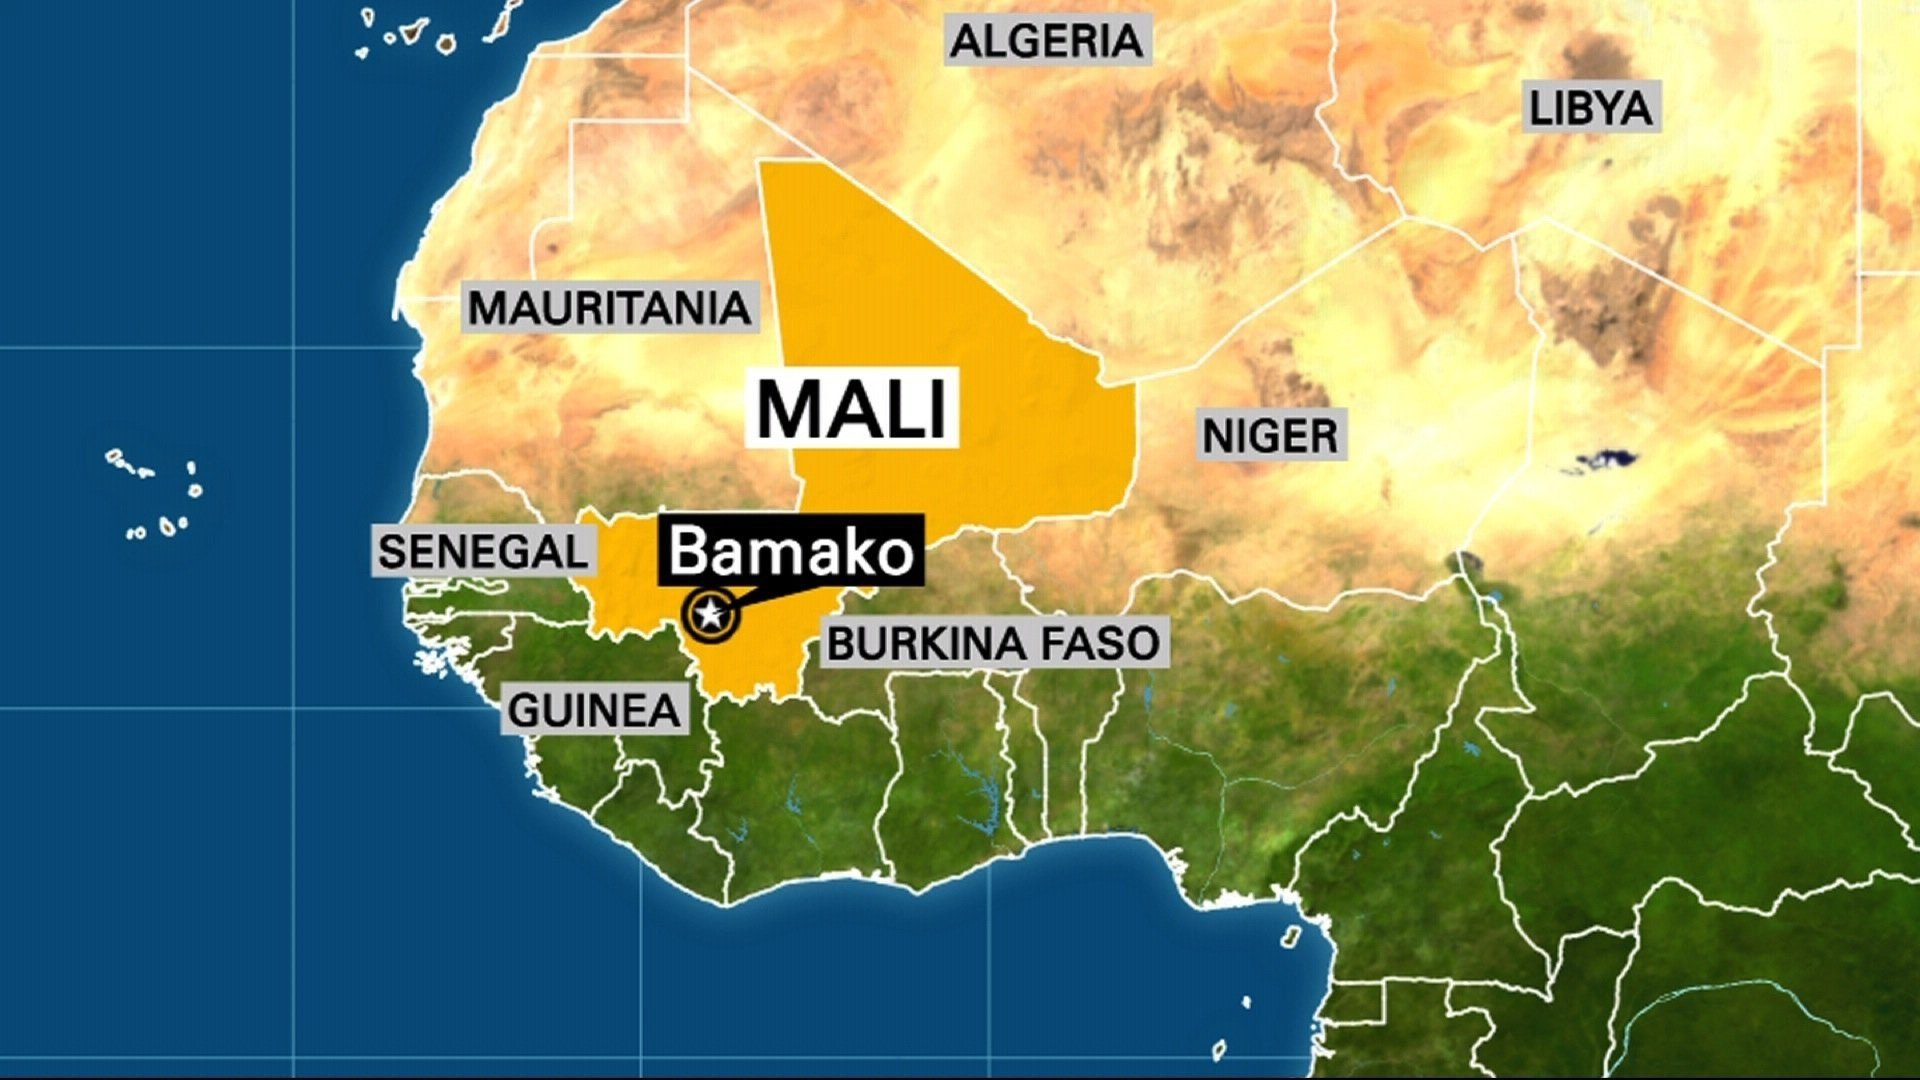 Terror attack under way at resort popular with westerners in Mali